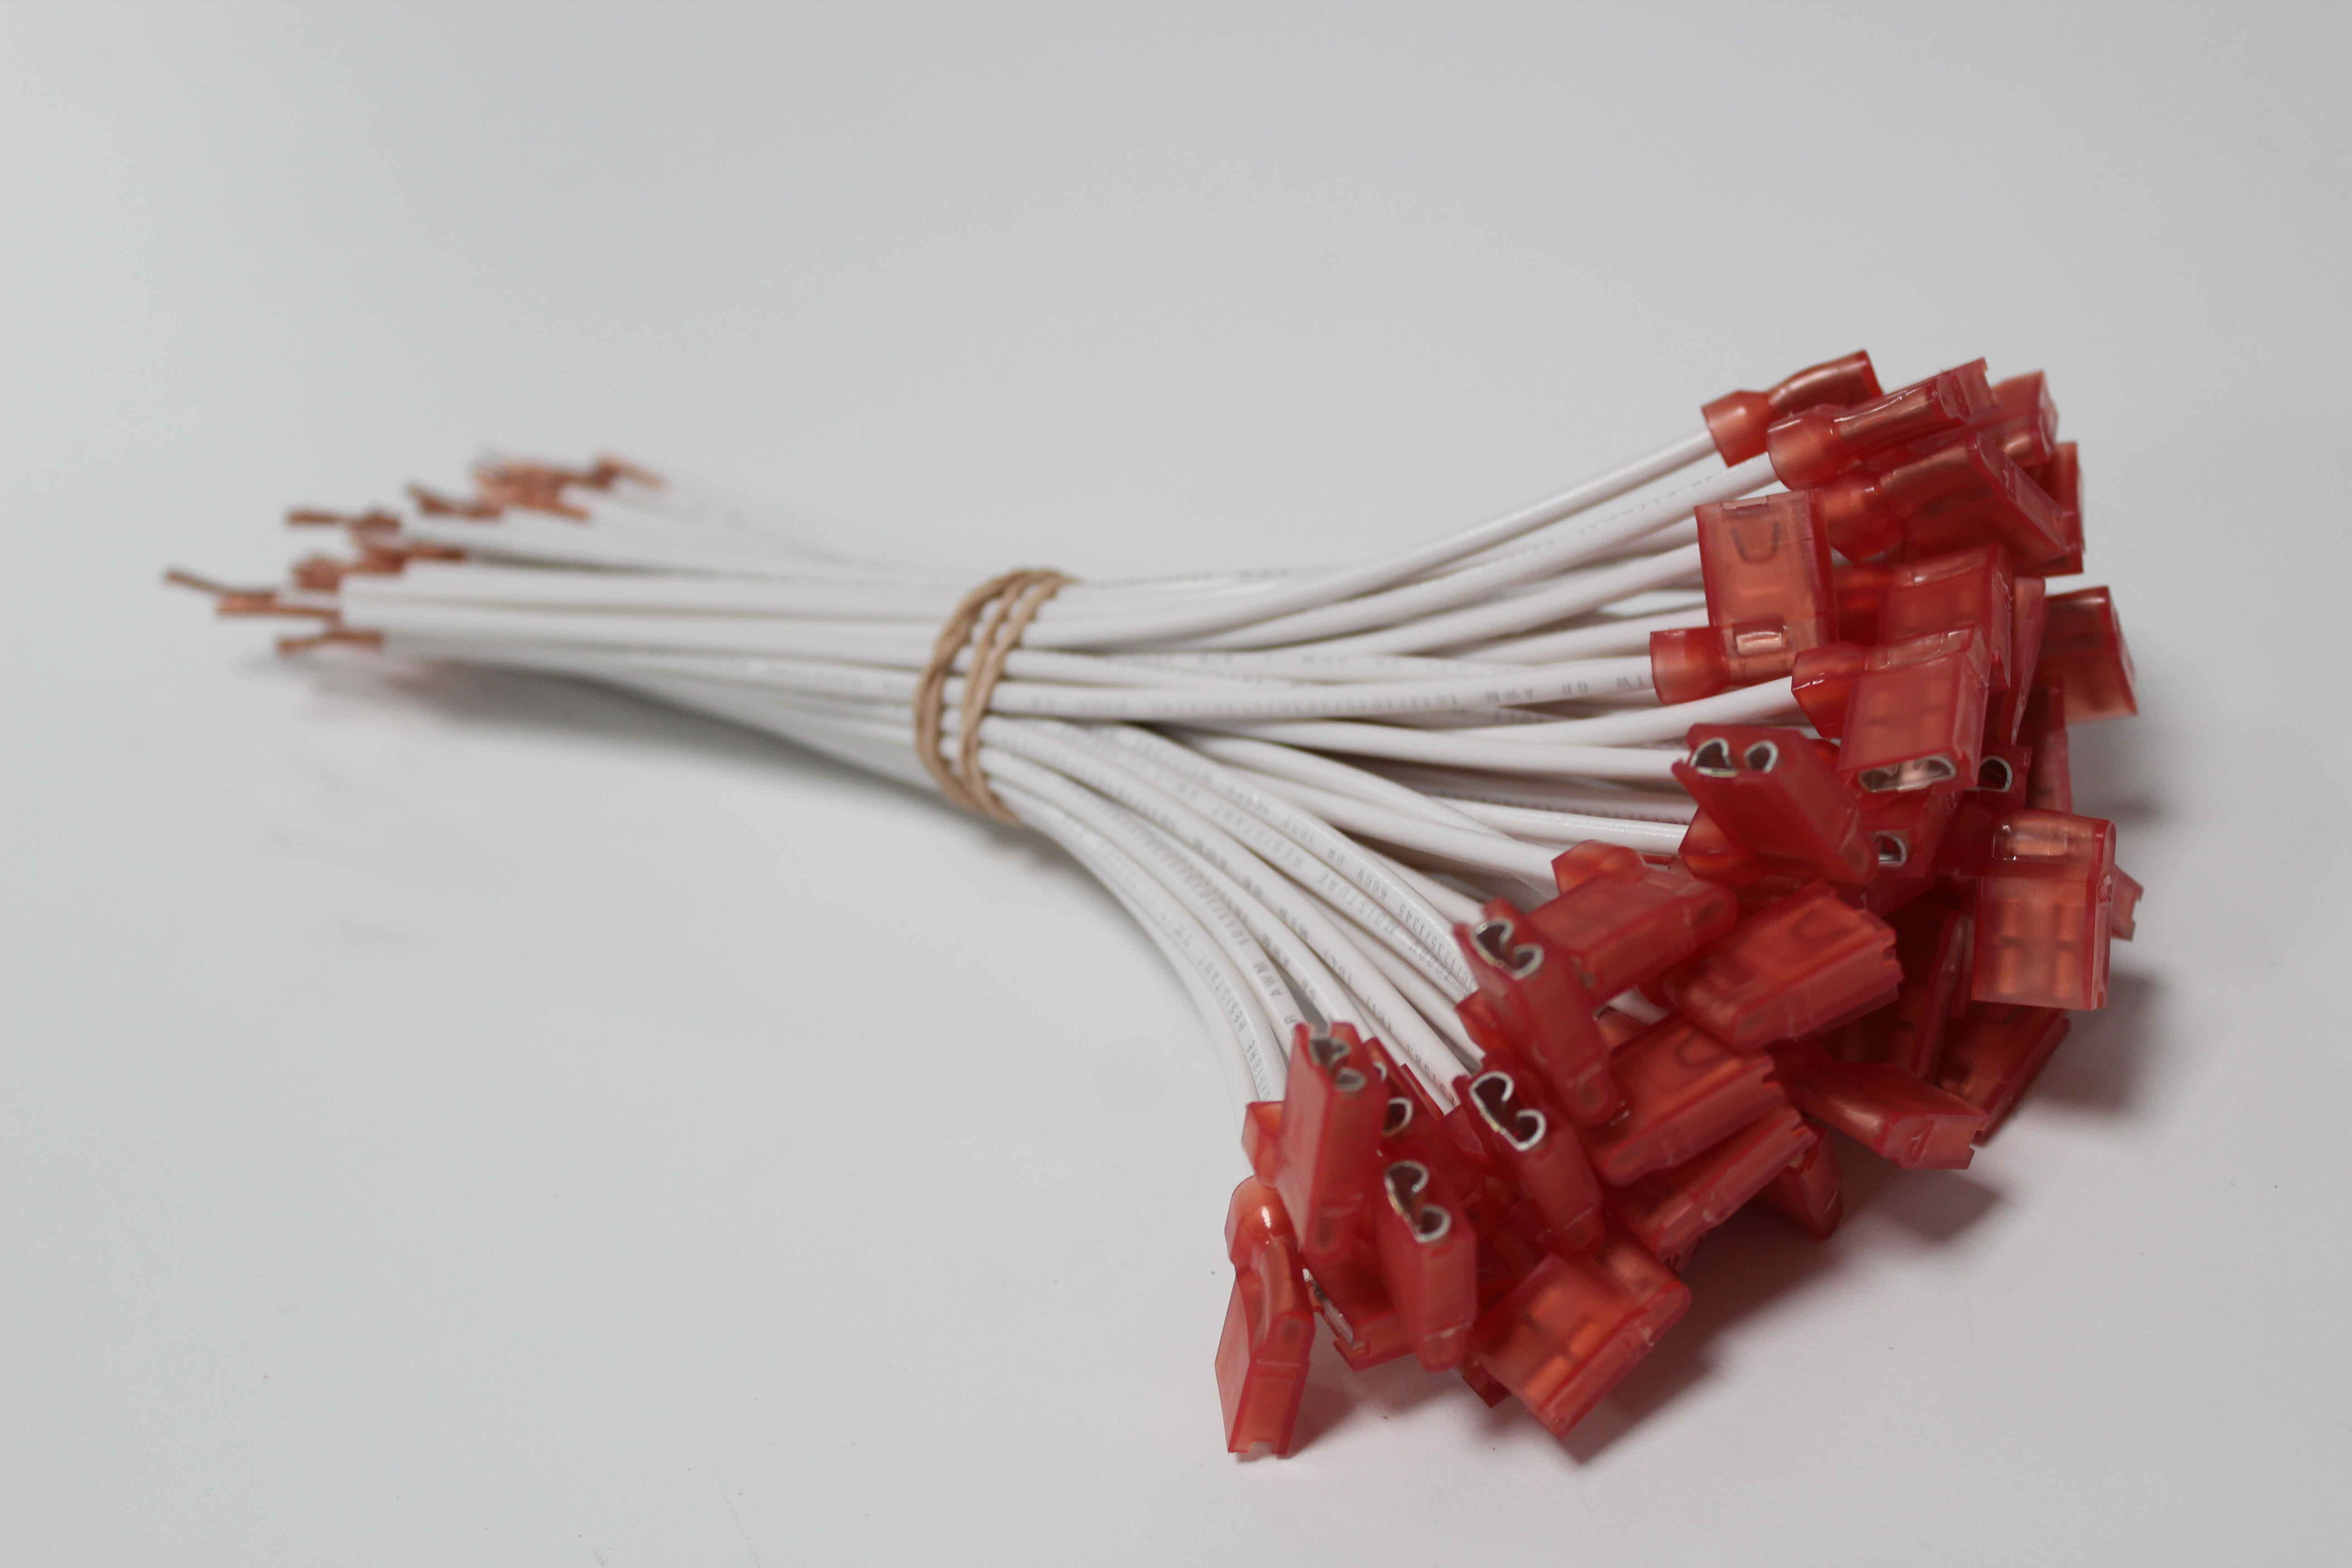 Wire Leads